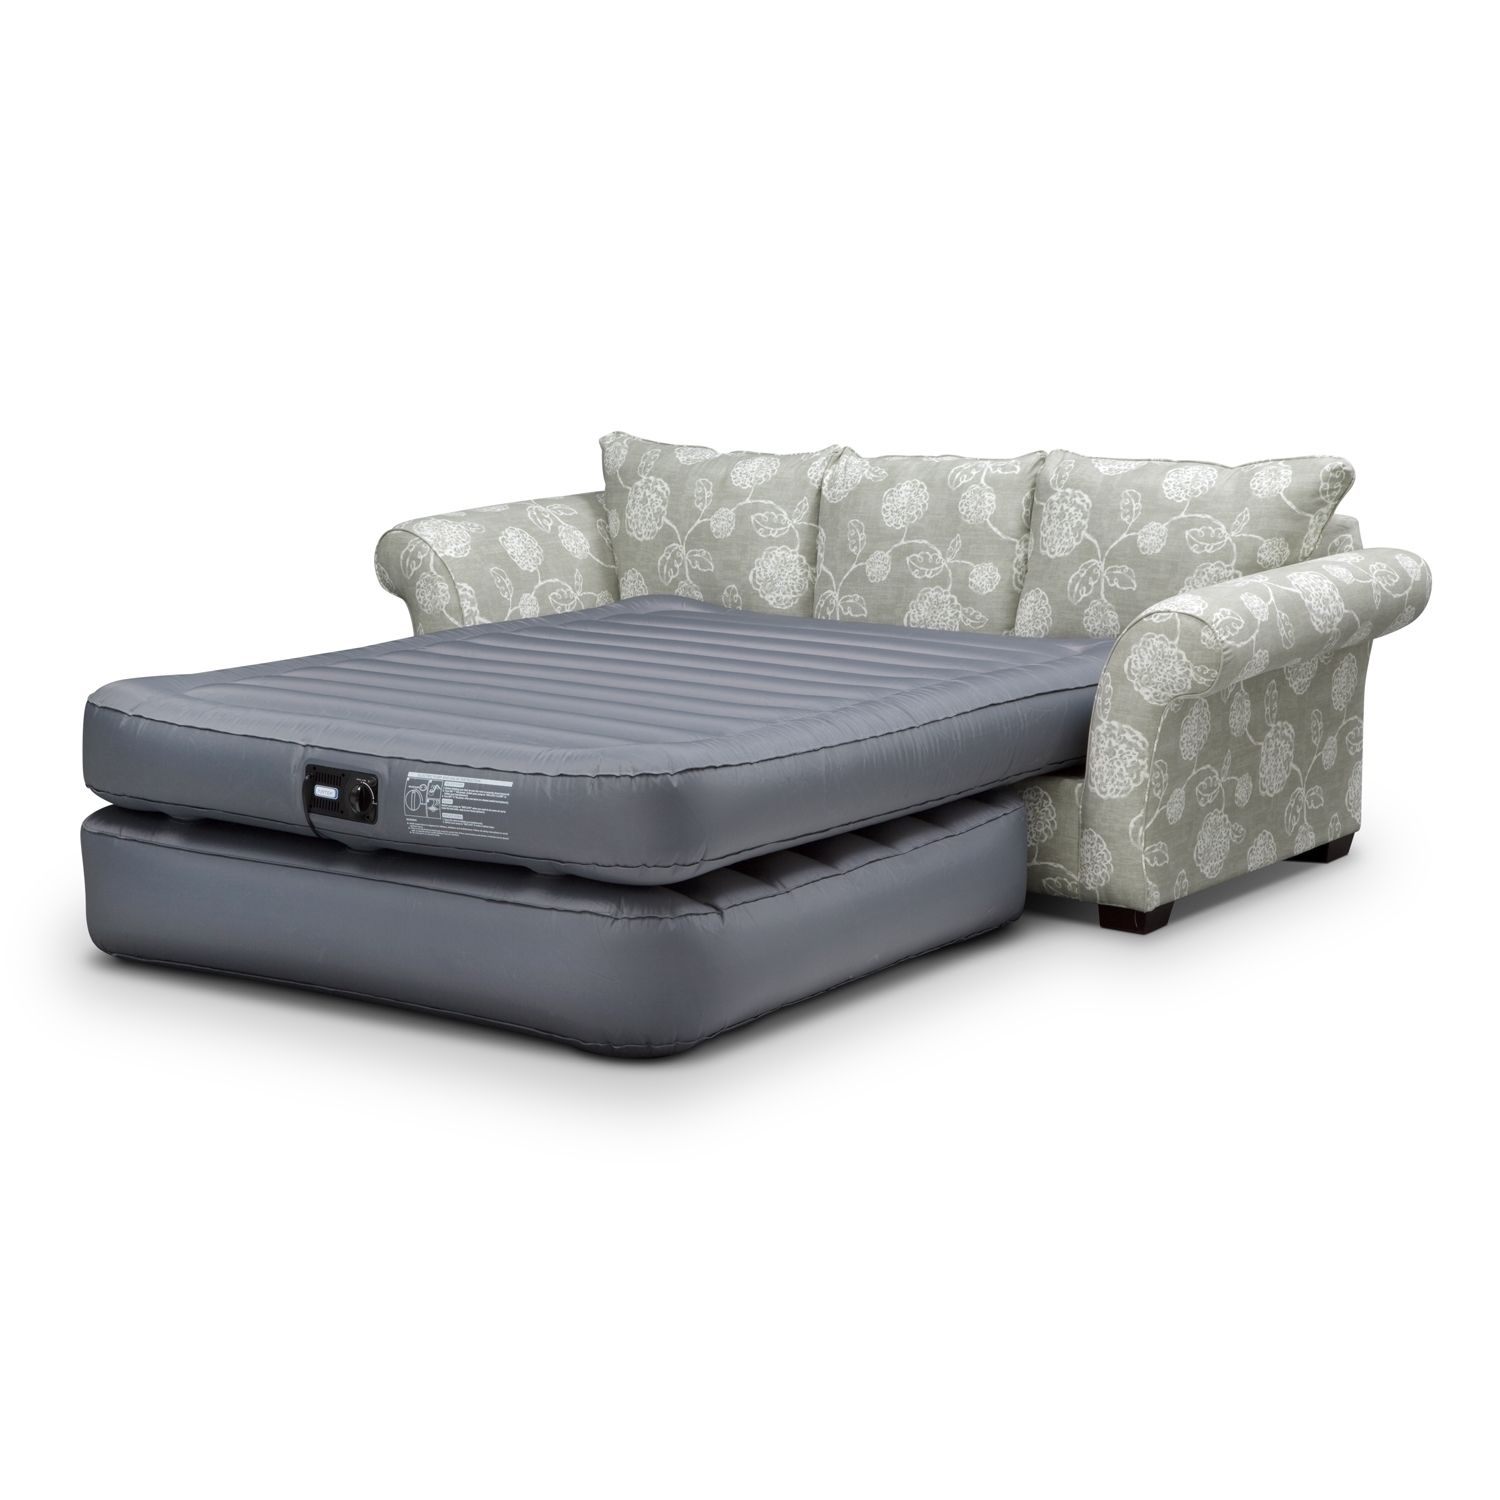 sofa beds for motorhomes wall bed systems queen size sleeper rv gradschoolfairs